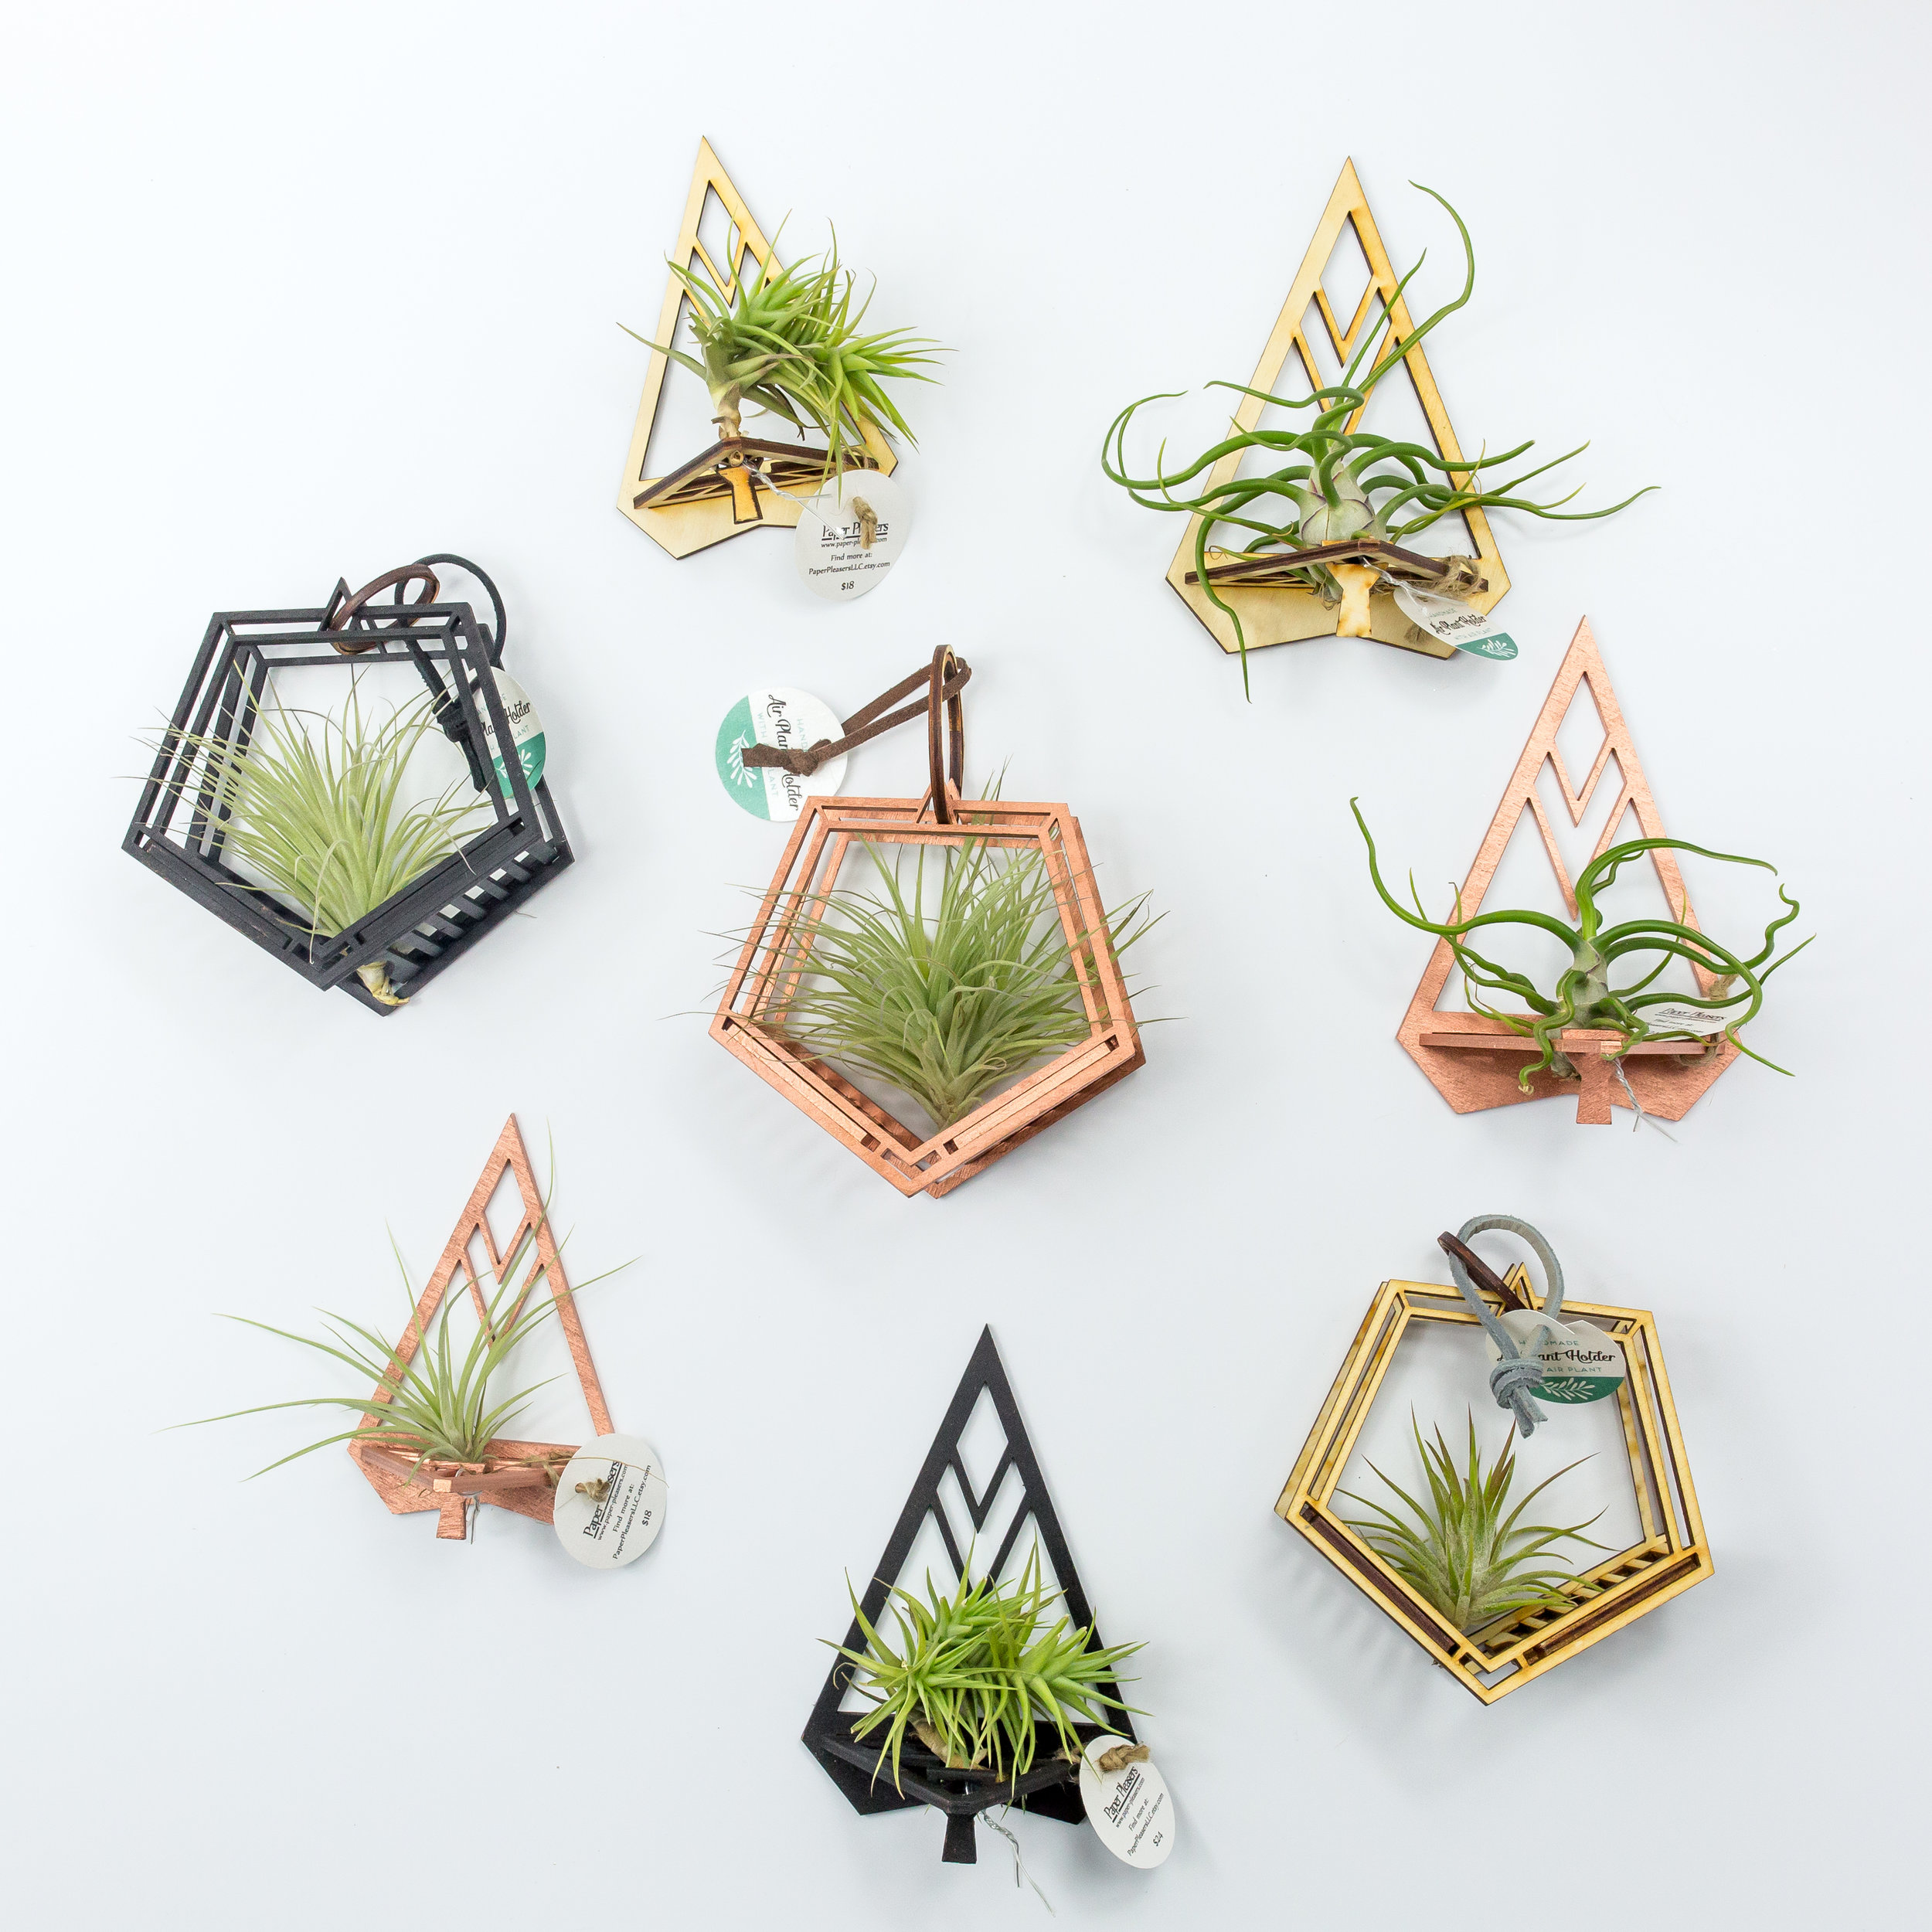 Shop Geometric Airplant Holders Here